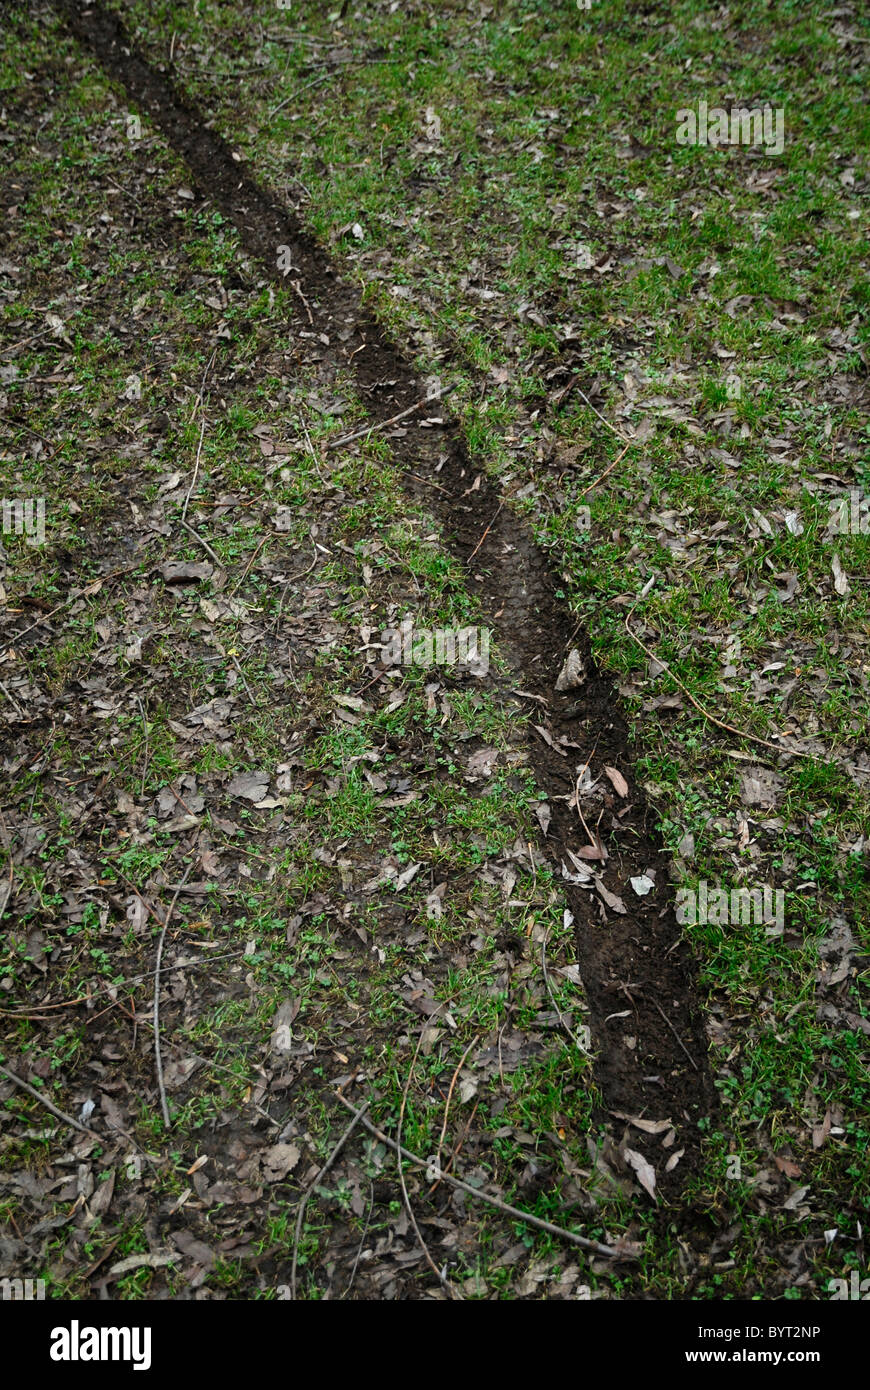 Track left by illegal green lane motorcycling on greenbelt land in Northamptonshire, 6th February, 2011. - Stock Image